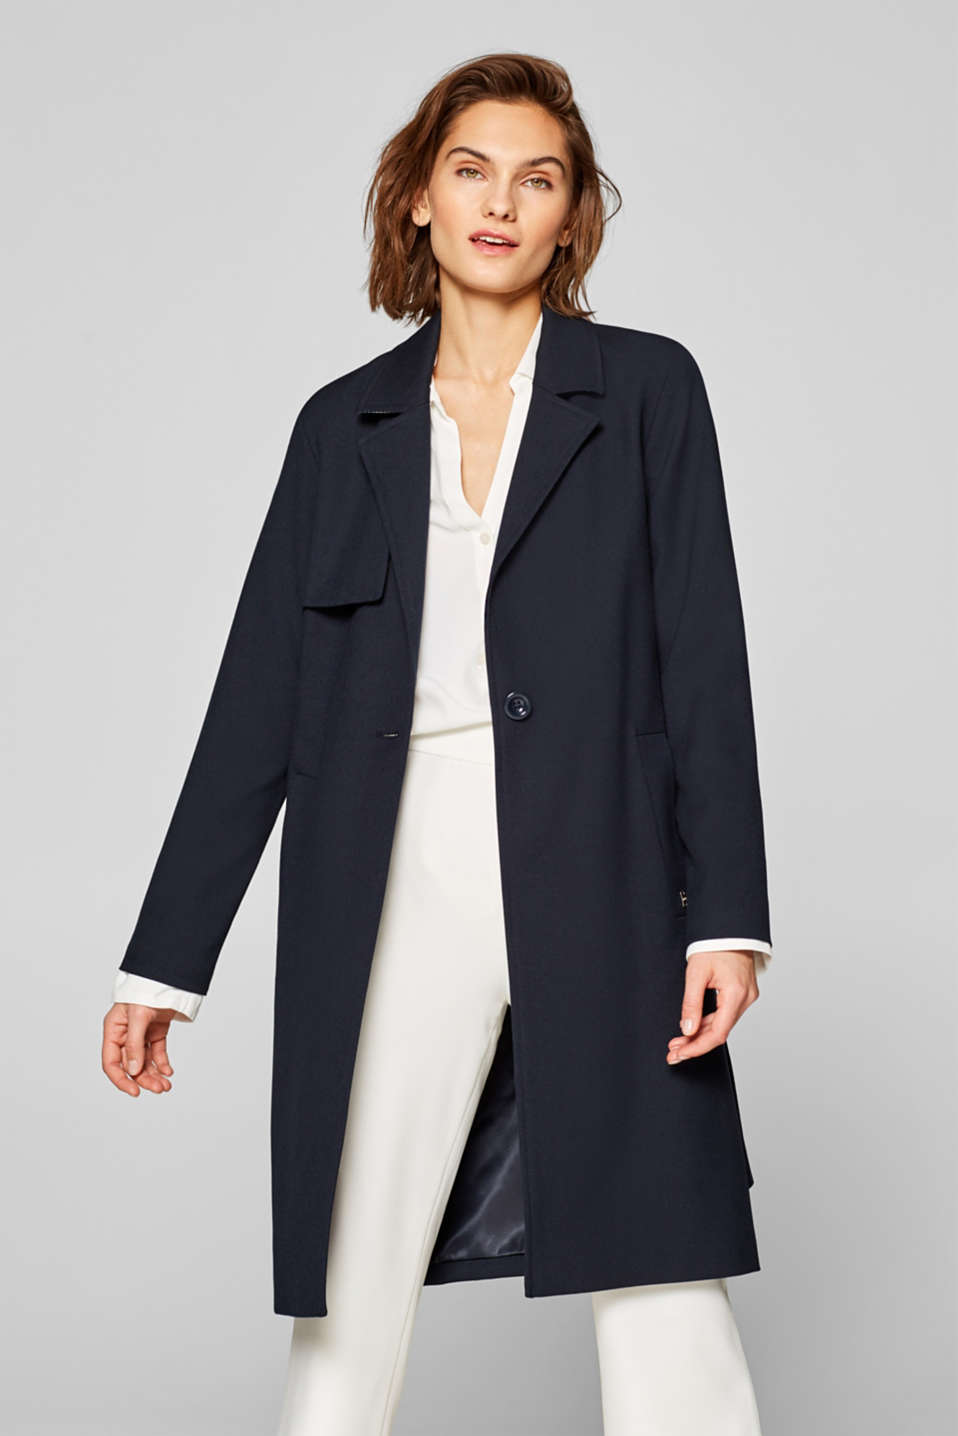 Esprit - Trench coat with stretch and a simple design